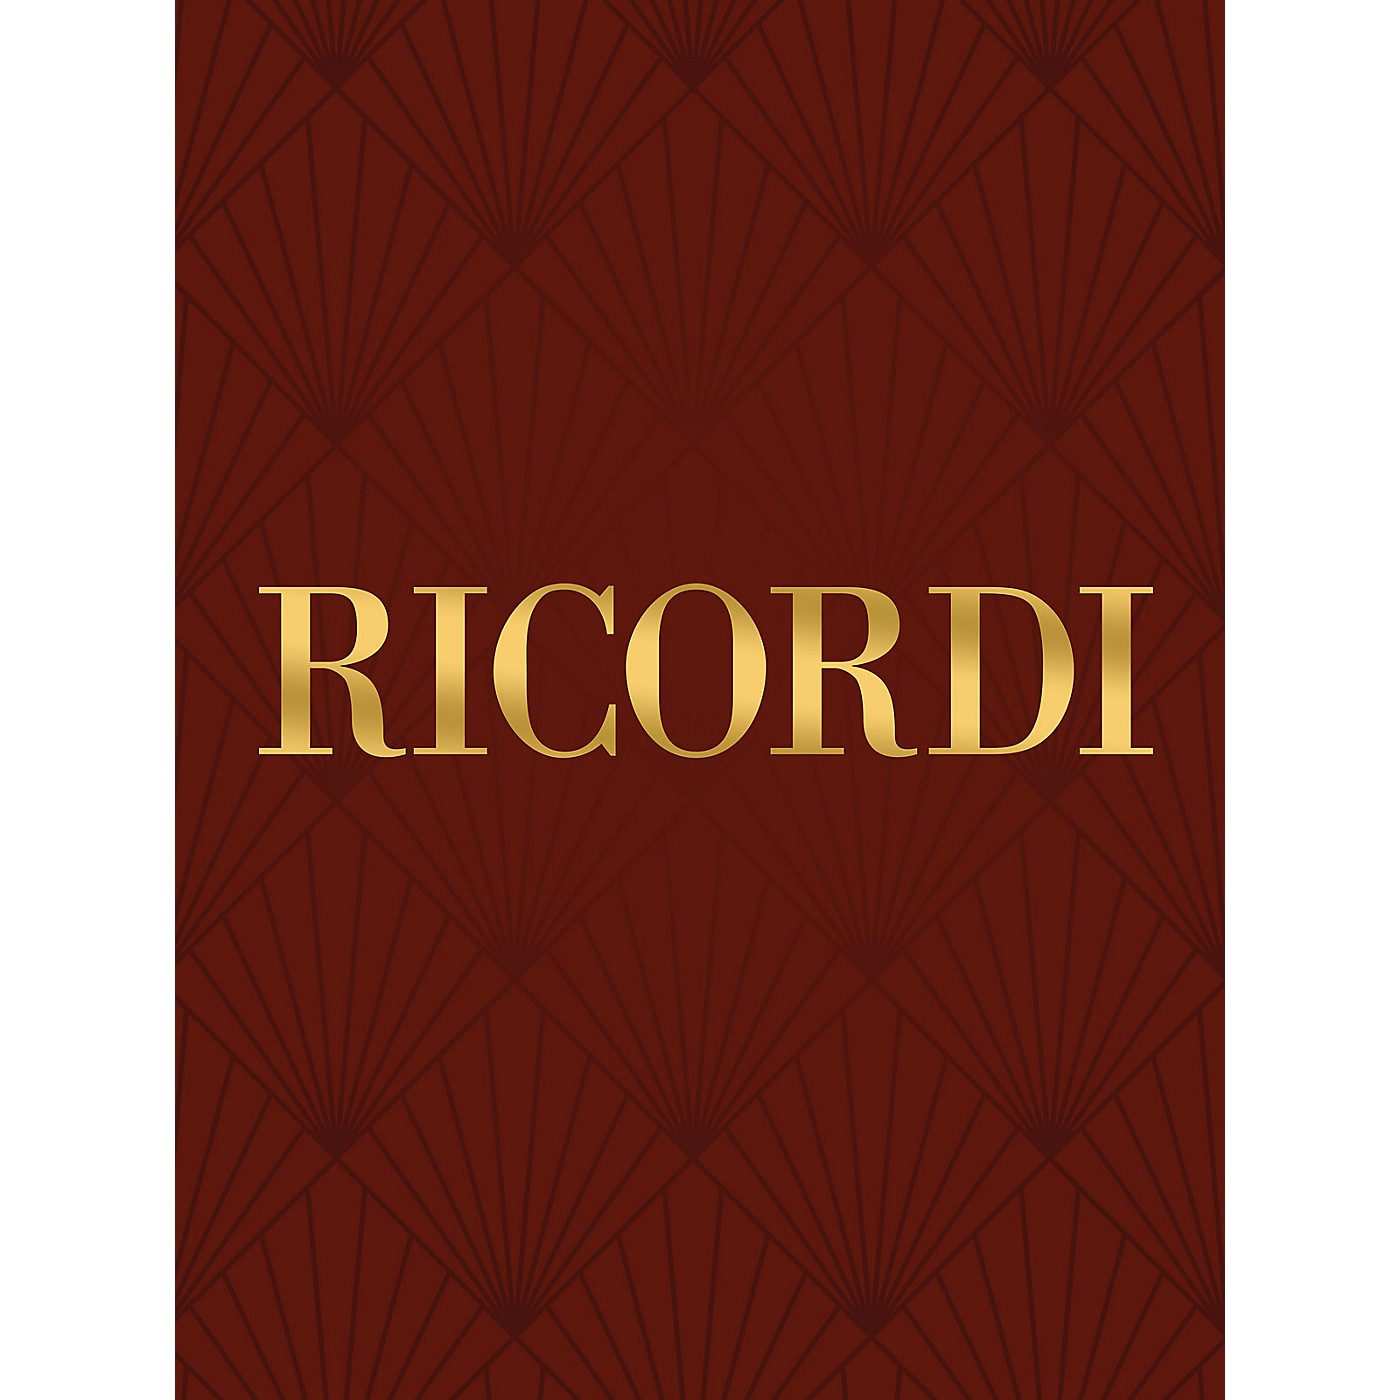 Ricordi Concerto in D Major for Flute and Basso Continuo RV783 Study Score by Vivaldi Edited by Karl Heller thumbnail